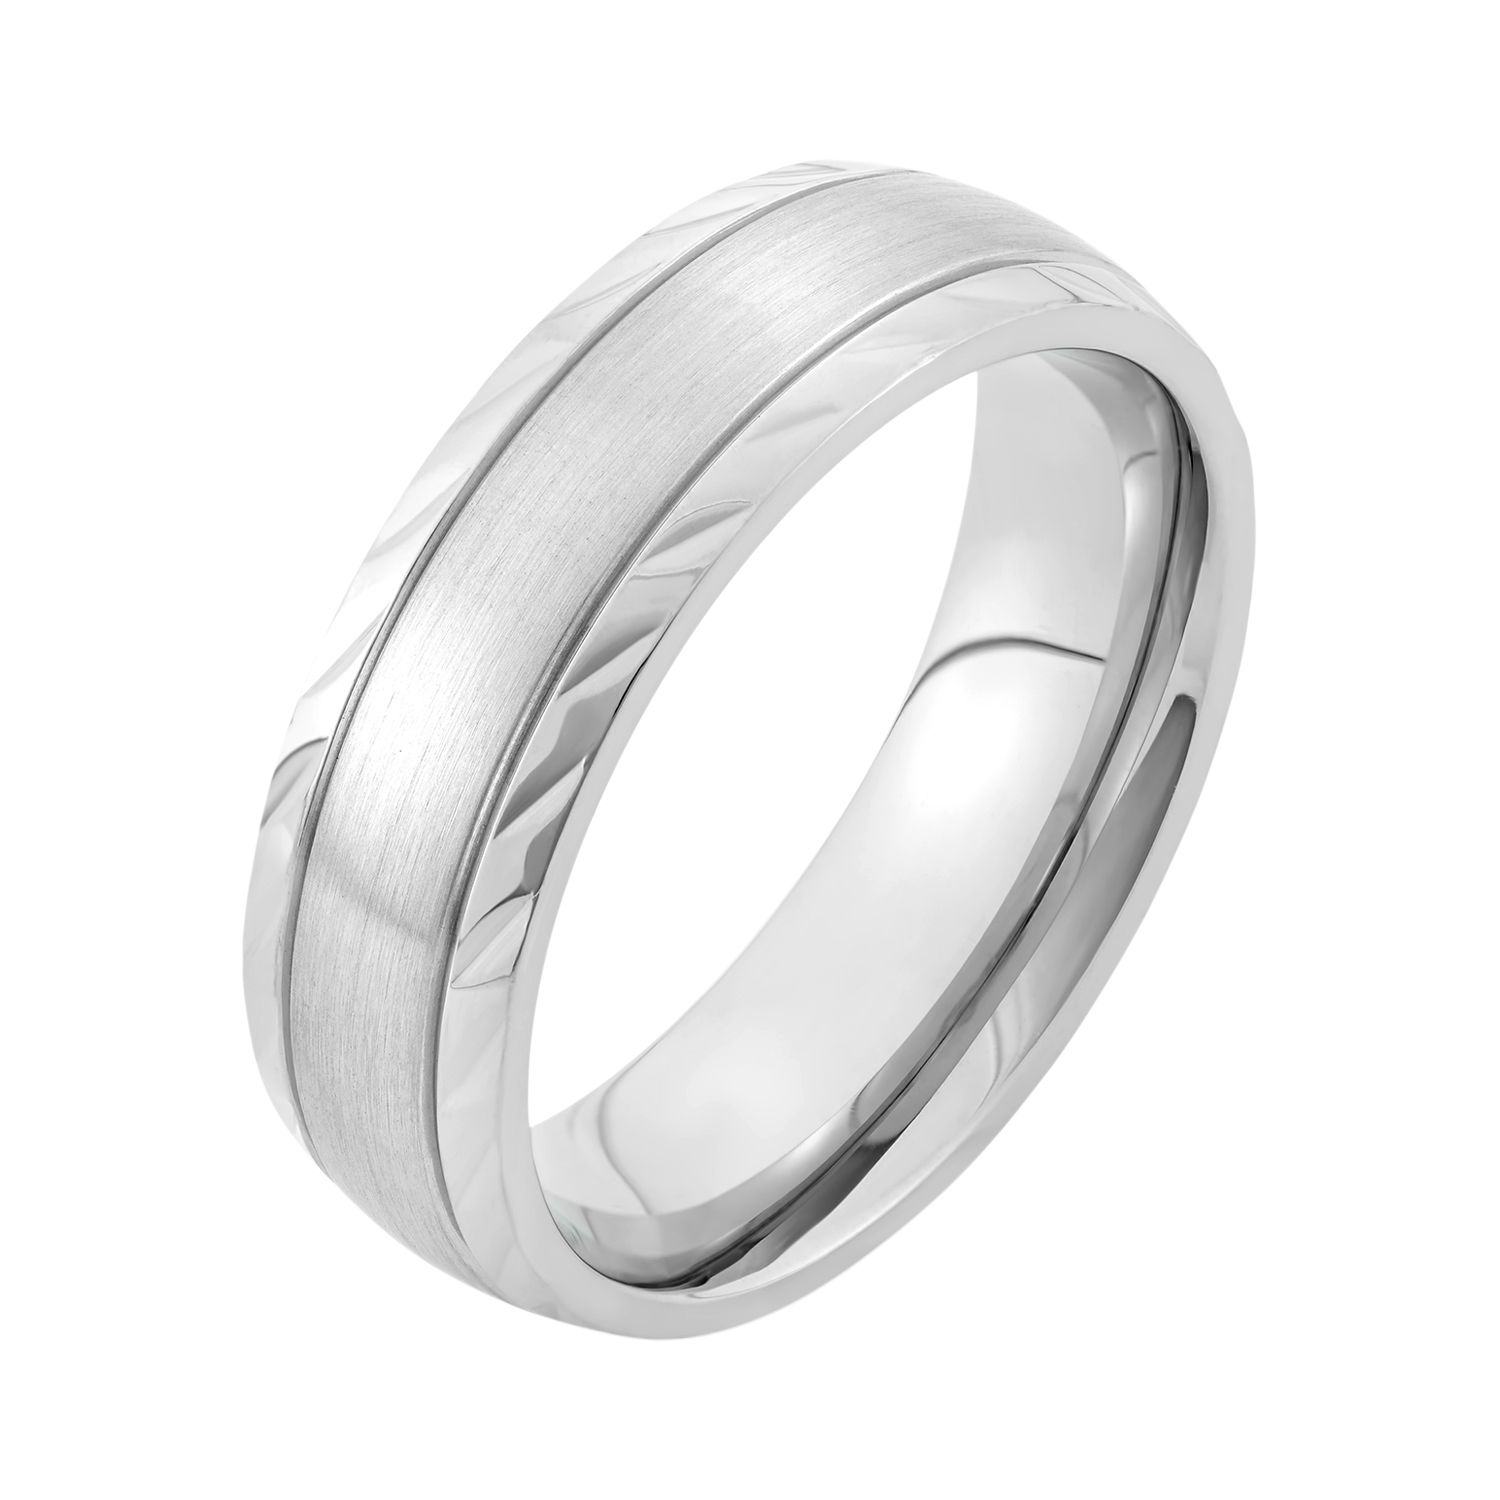 samuel jewellery wedding product grooms polished satin occasion l ridged s webstore rings number ring recipient category men h titanium